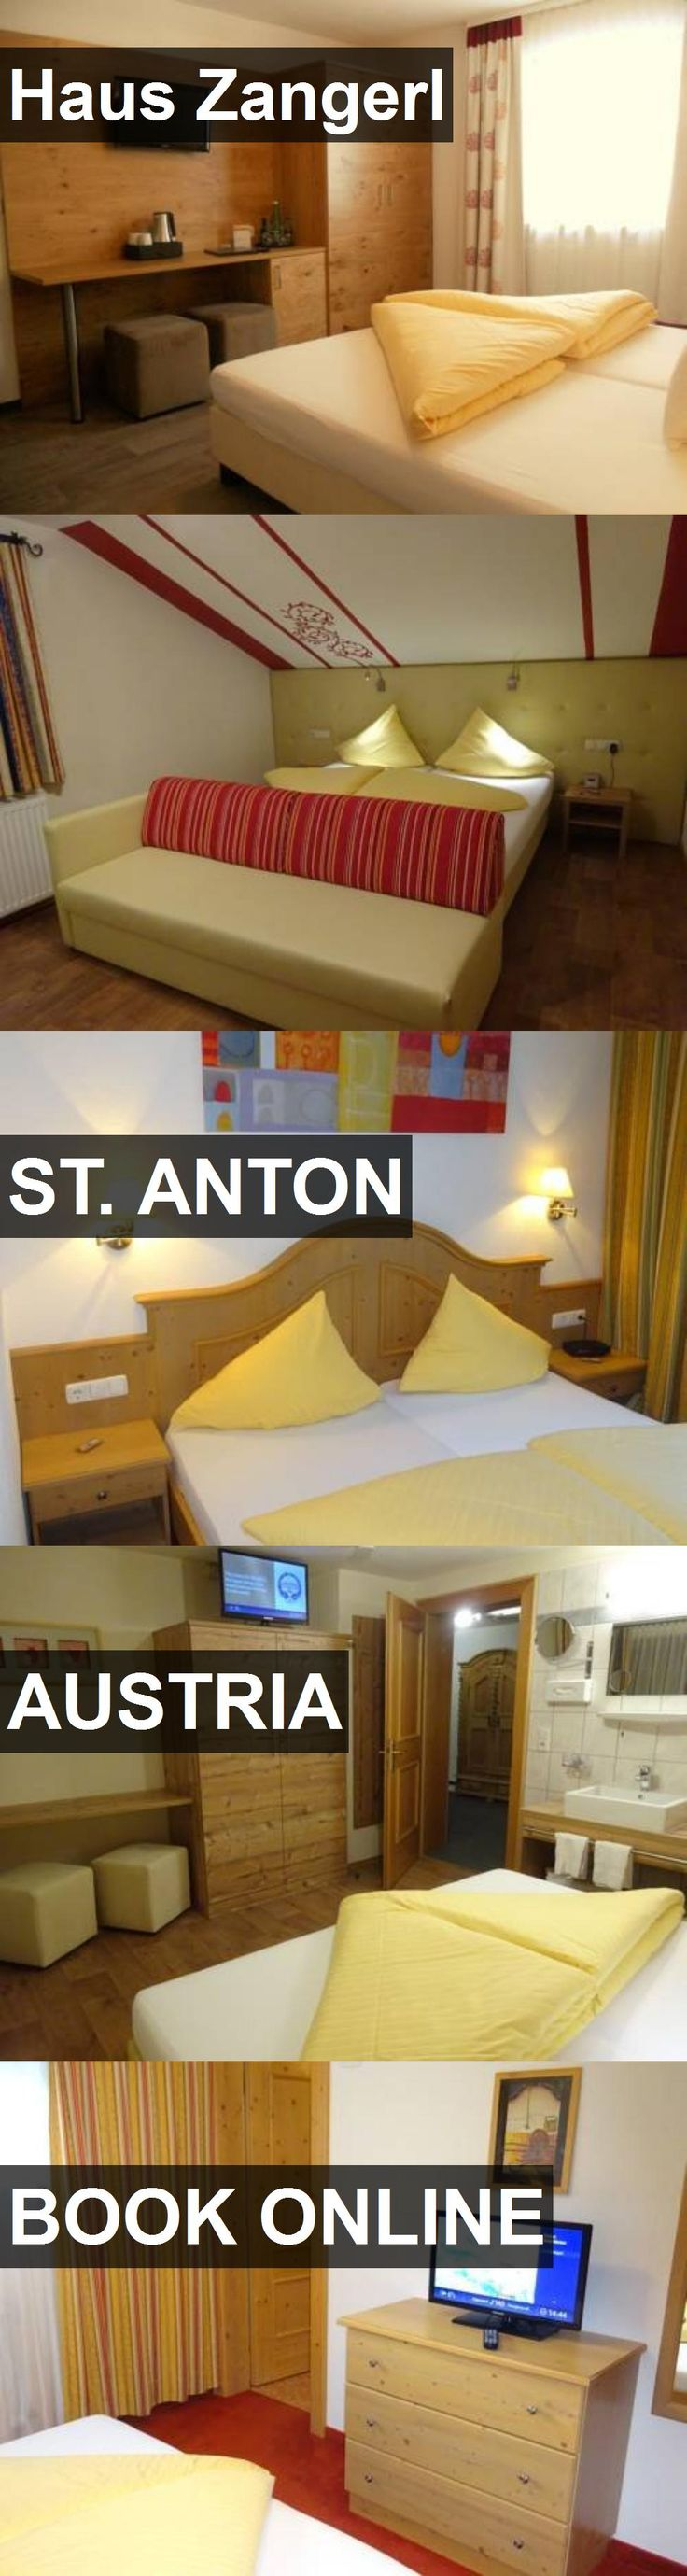 Hotel Haus Zangerl in St. Anton, Austria. For more information, photos, reviews and best prices please follow the link. #Austria #St.Anton #travel #vacation #hotel